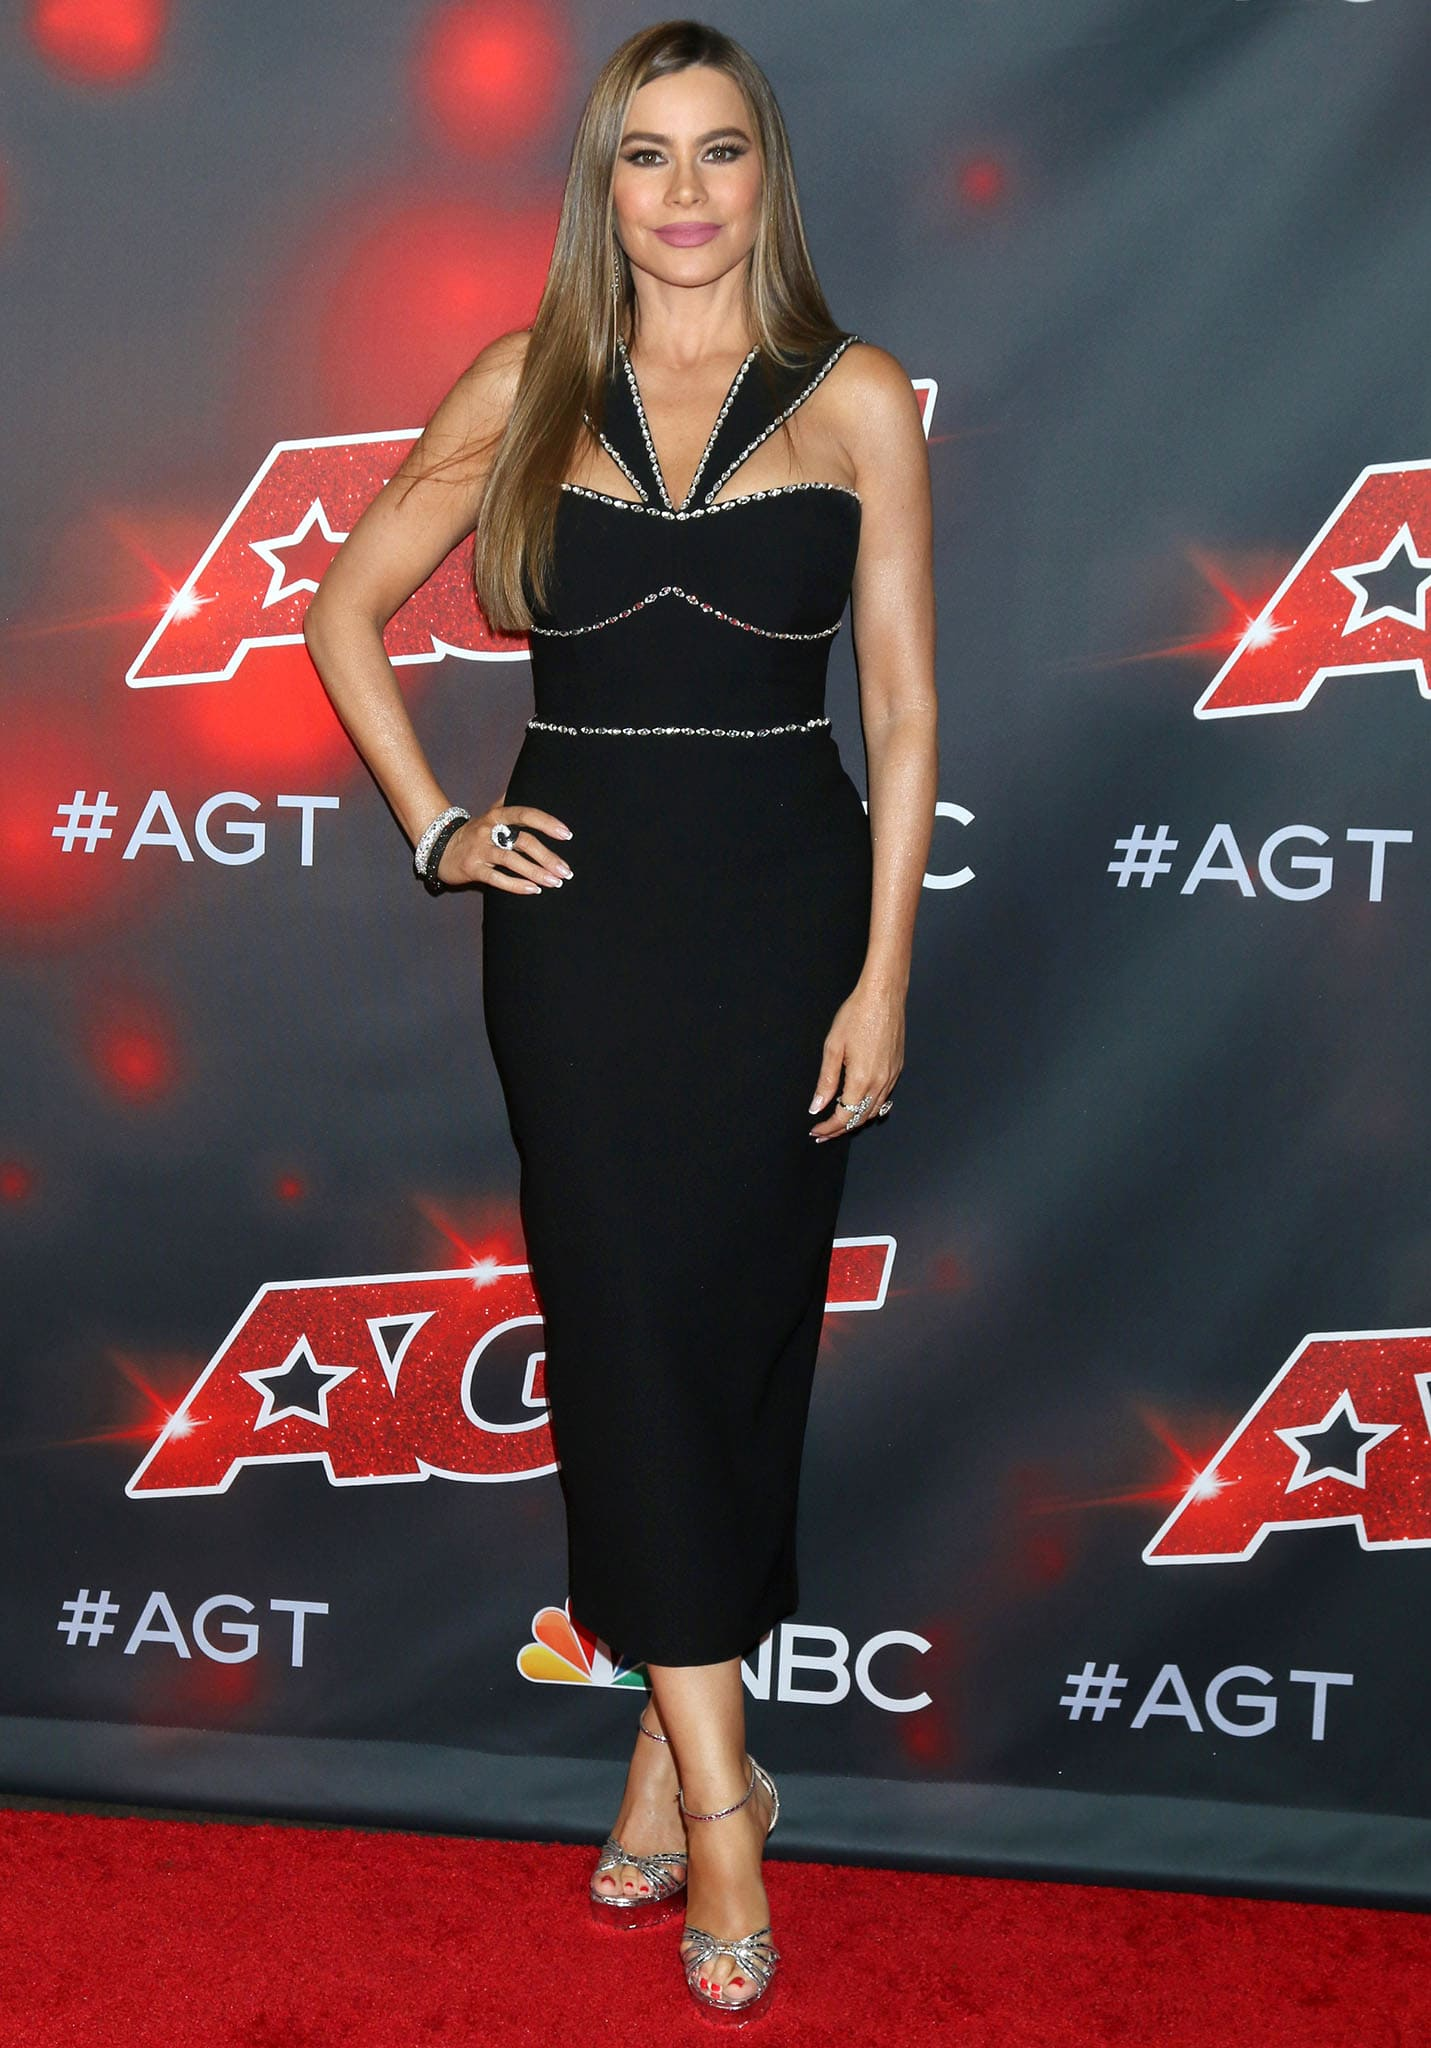 Sofia Vergara highlights her hourglass curves in Rosaria crystal-trimmed dress at America's Got Talent live show red carpet on September 7, 2021